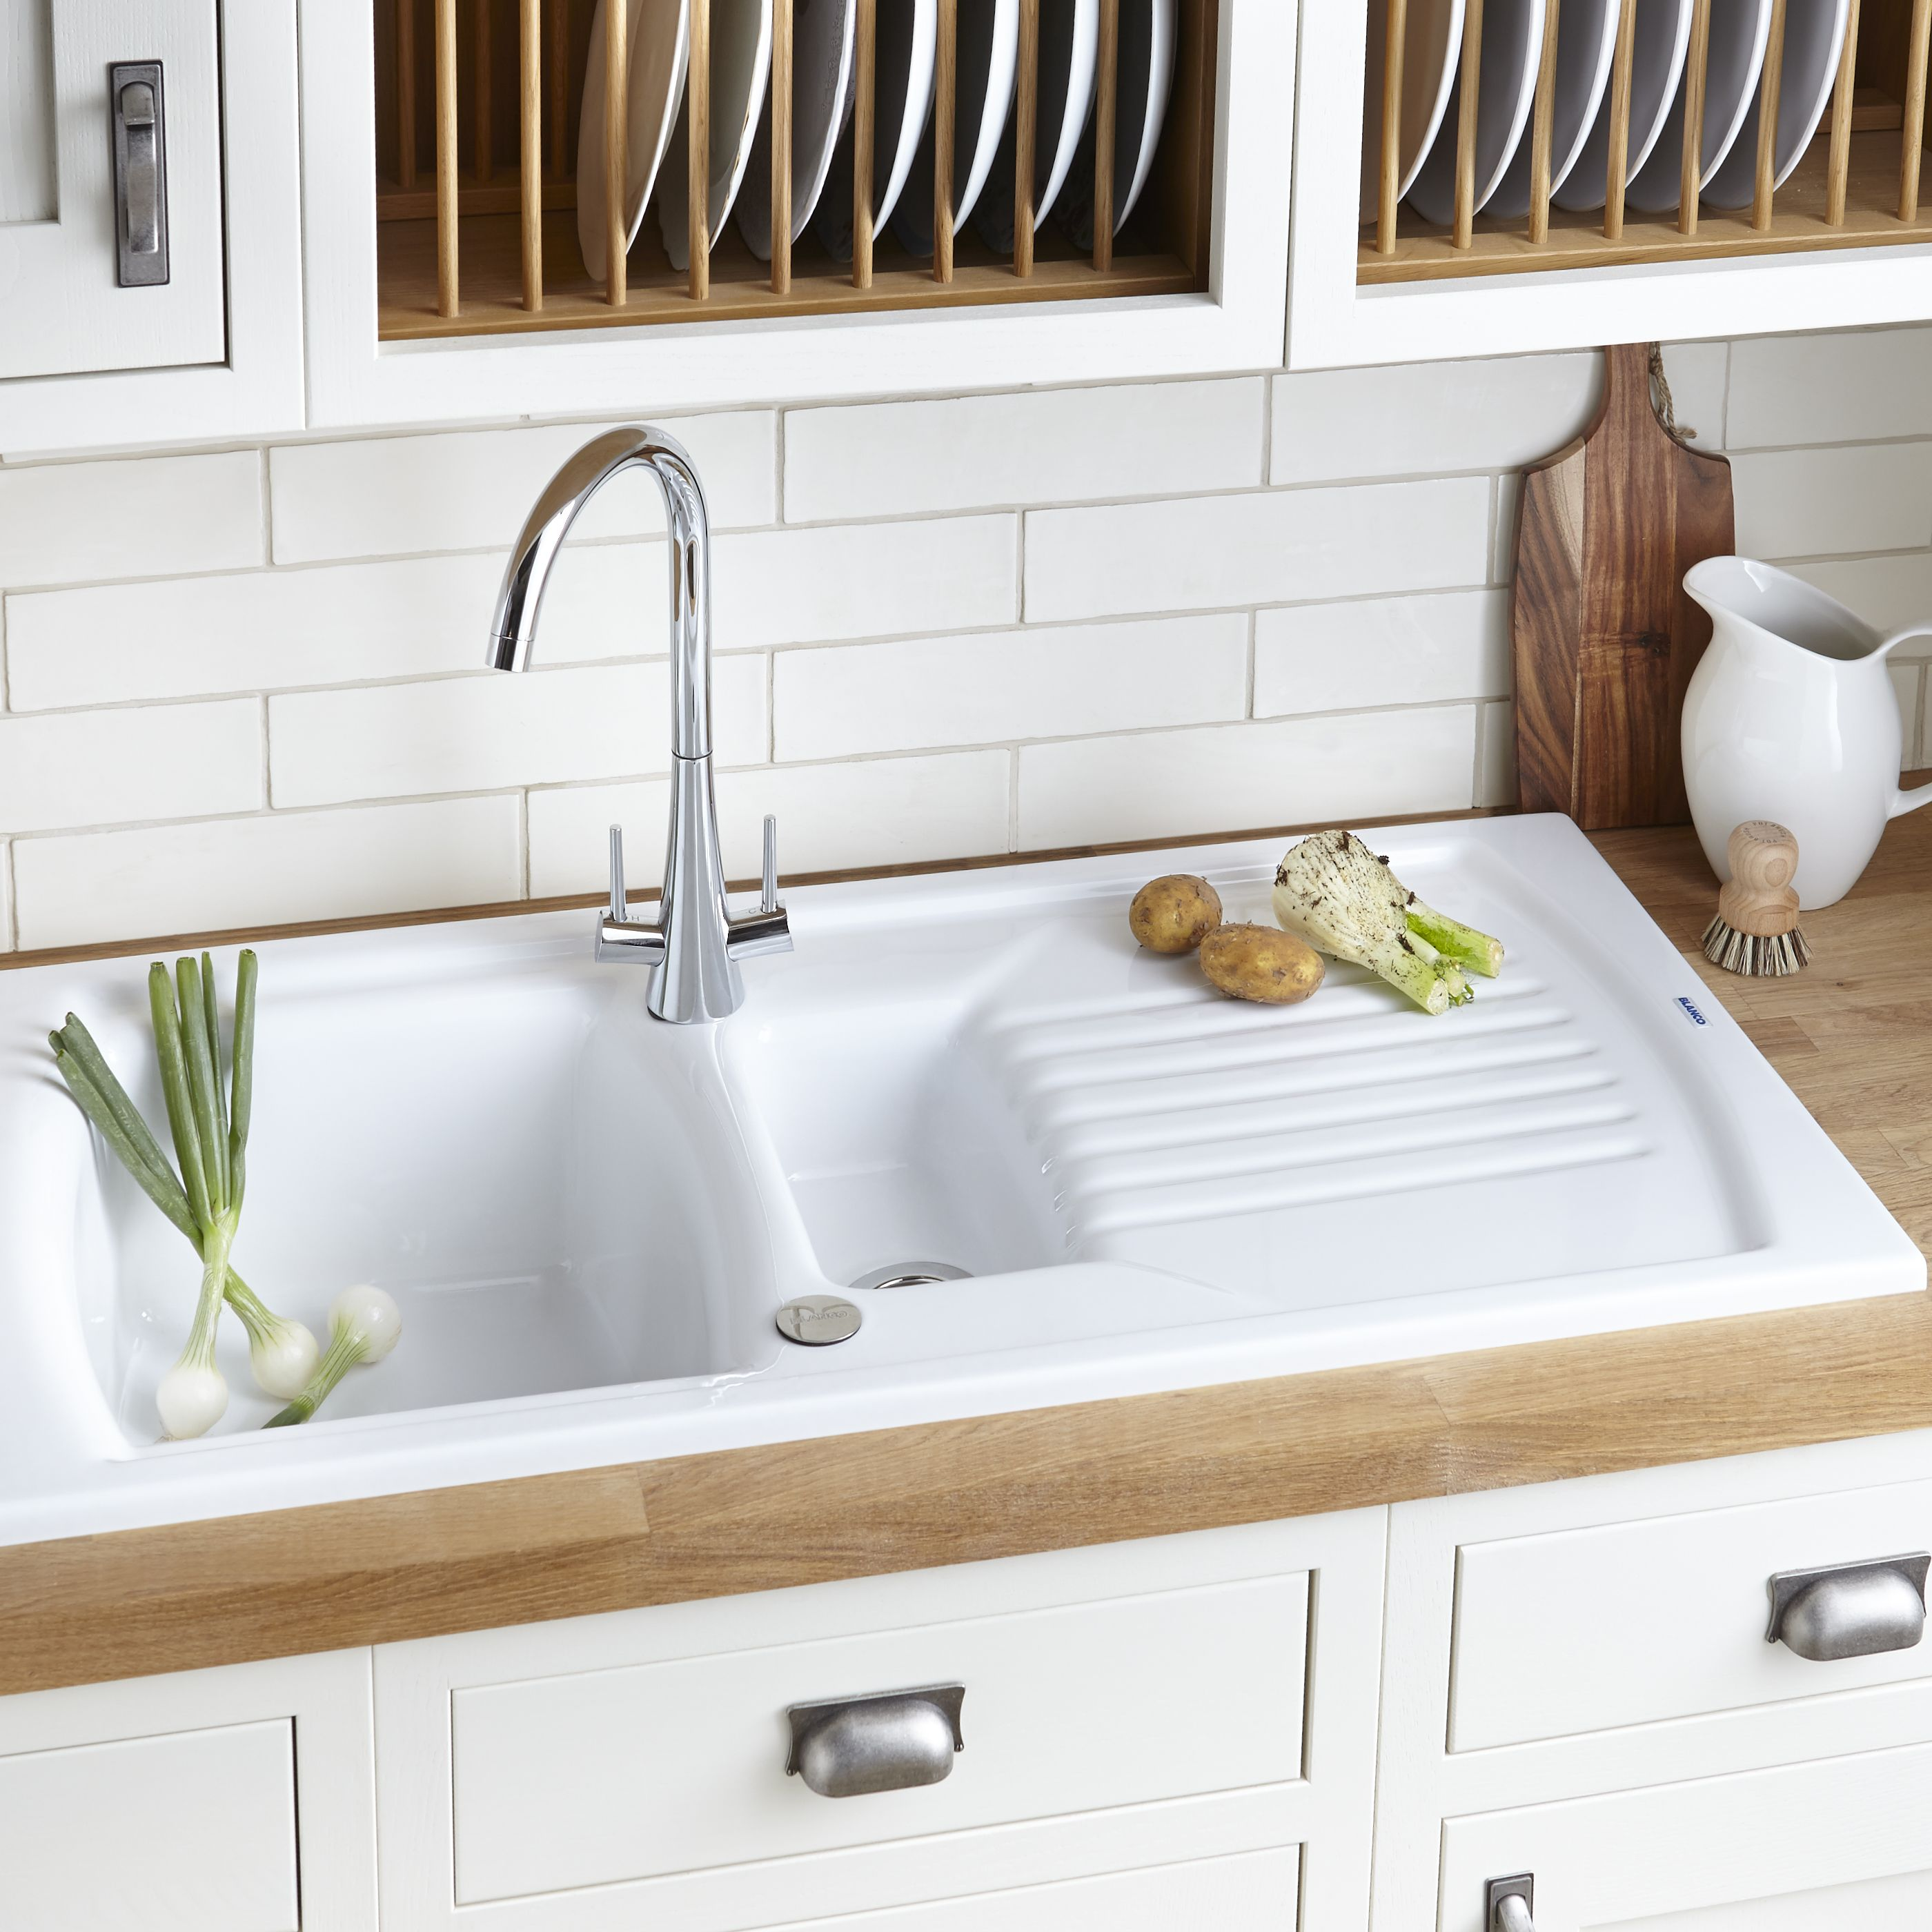 Vintage kitchen design ideas ideas advice diy at b q for The brook kitchen and tap